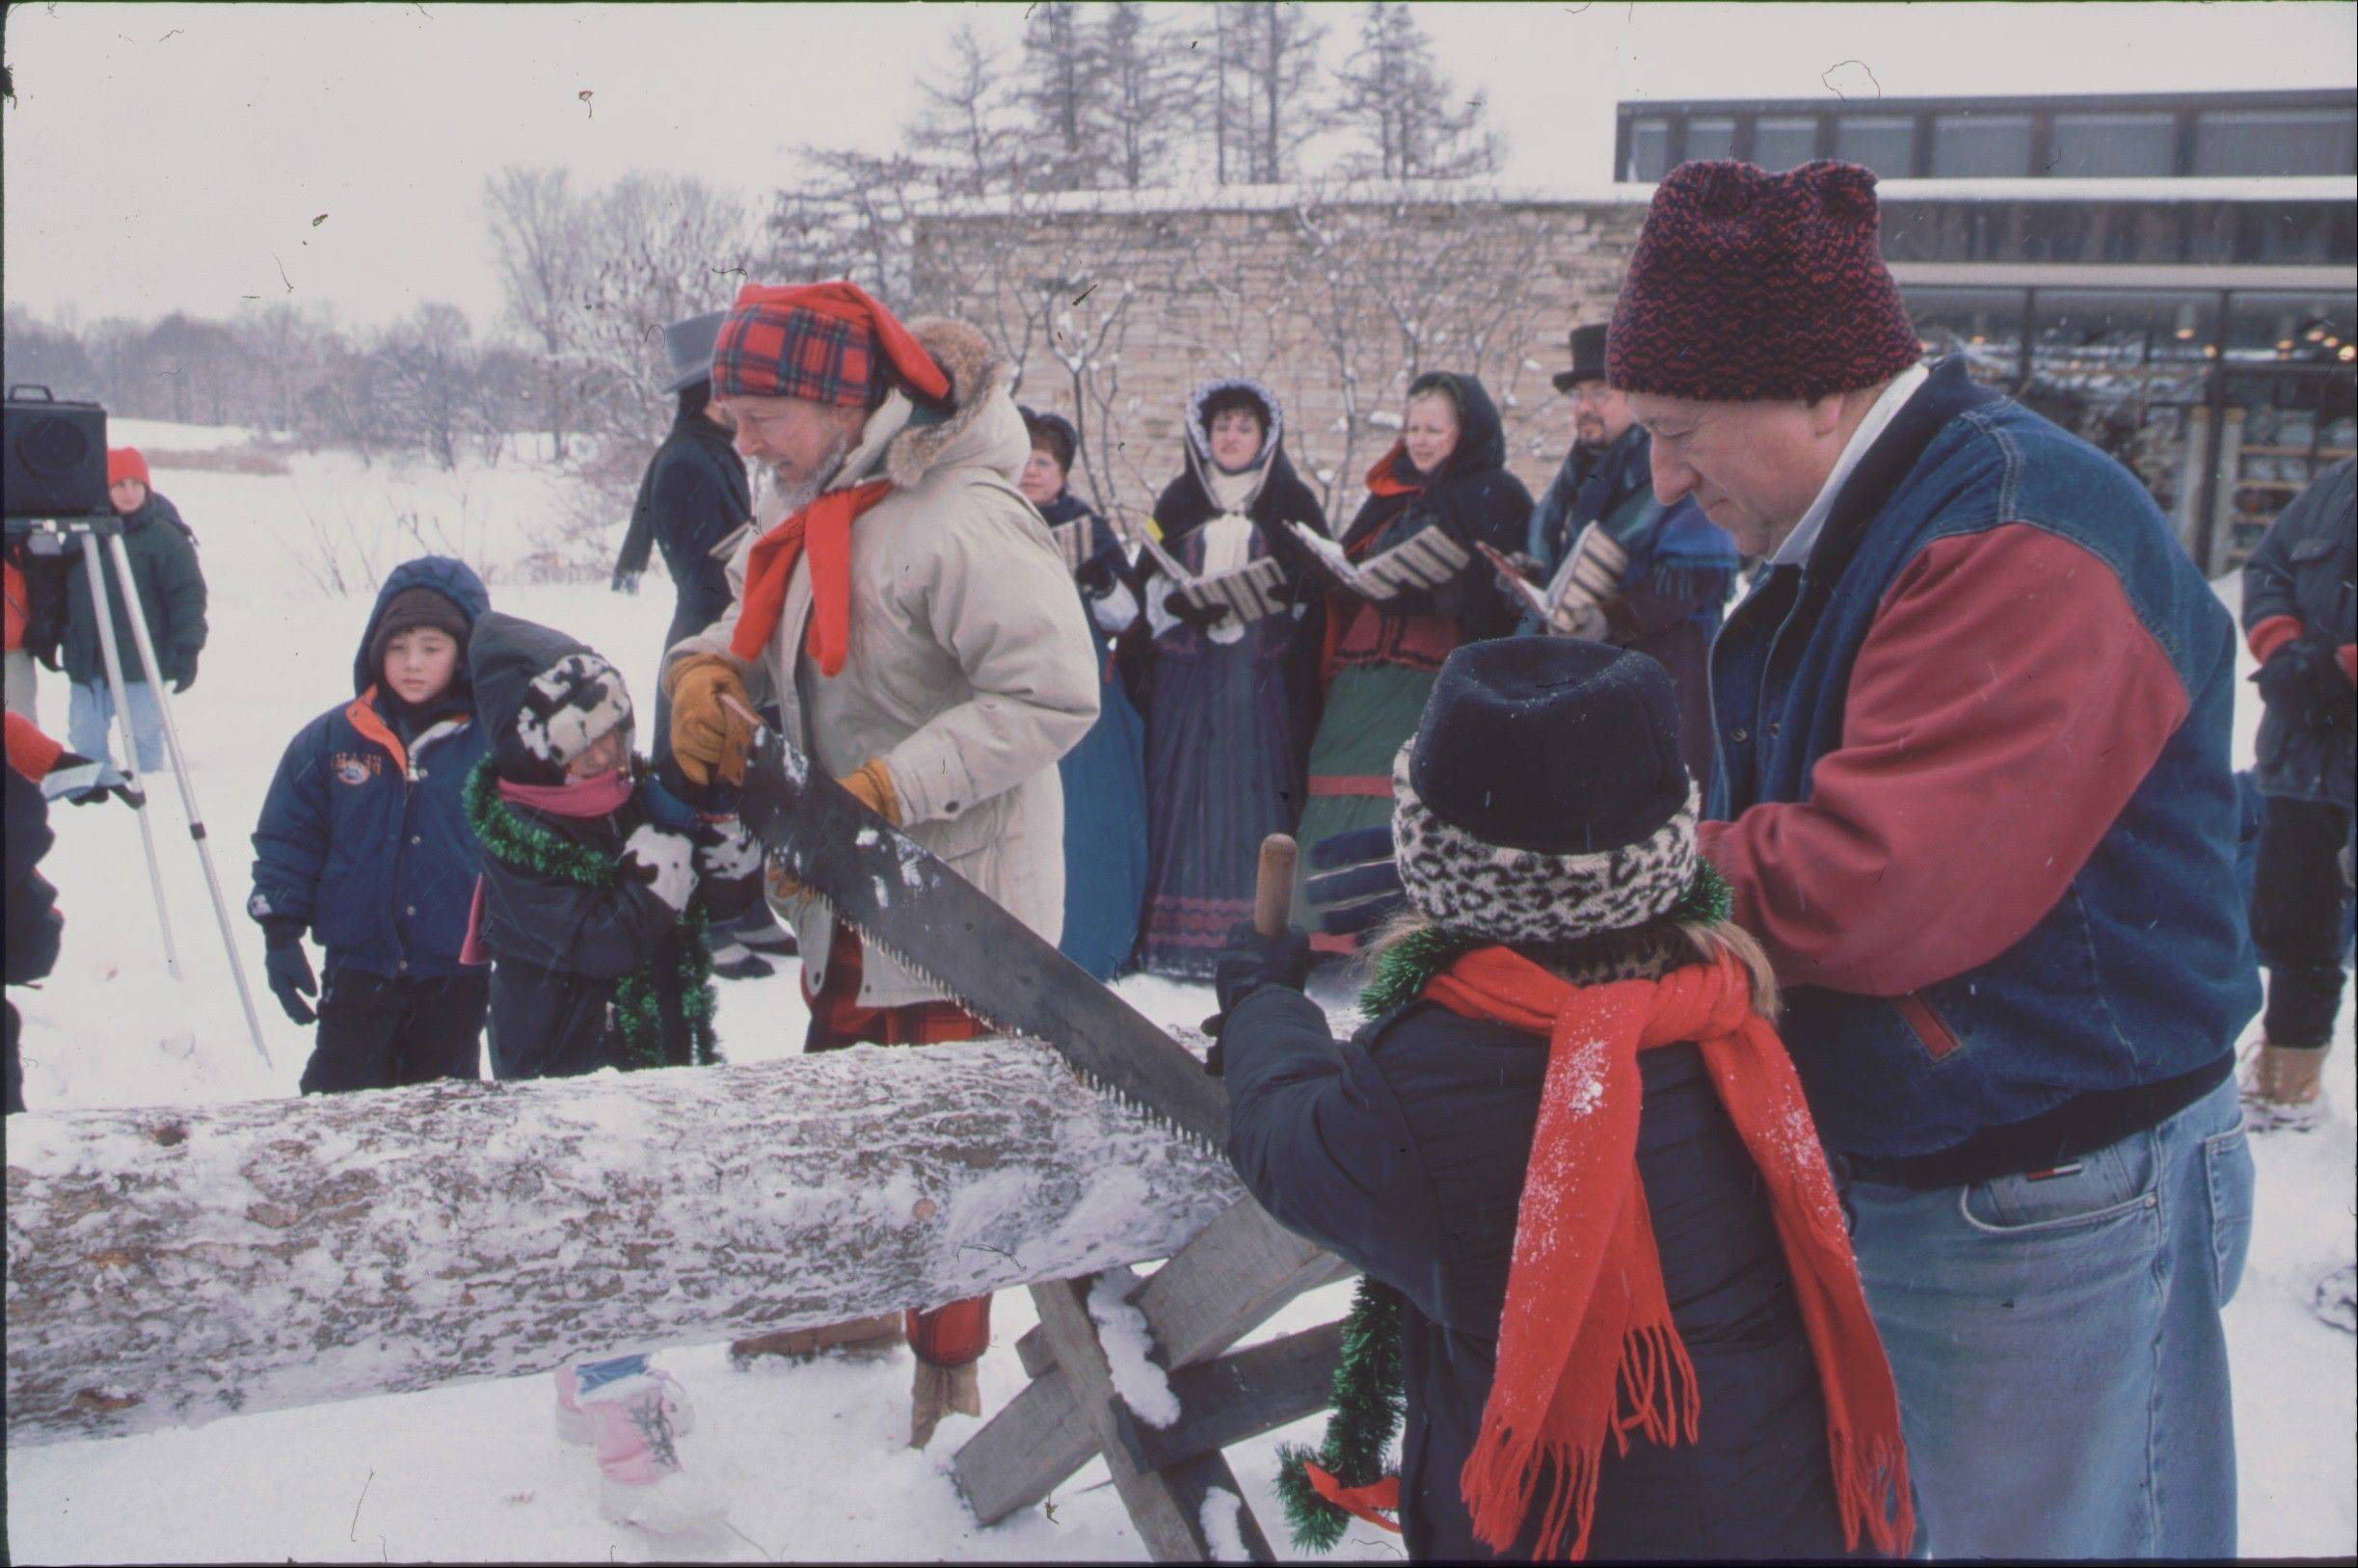 The Morton Arboretum will sponsor its 35th annual hunt for the yule log starting at 2 p.m. Sunday, Dec. 30, at the museum in Lisle.